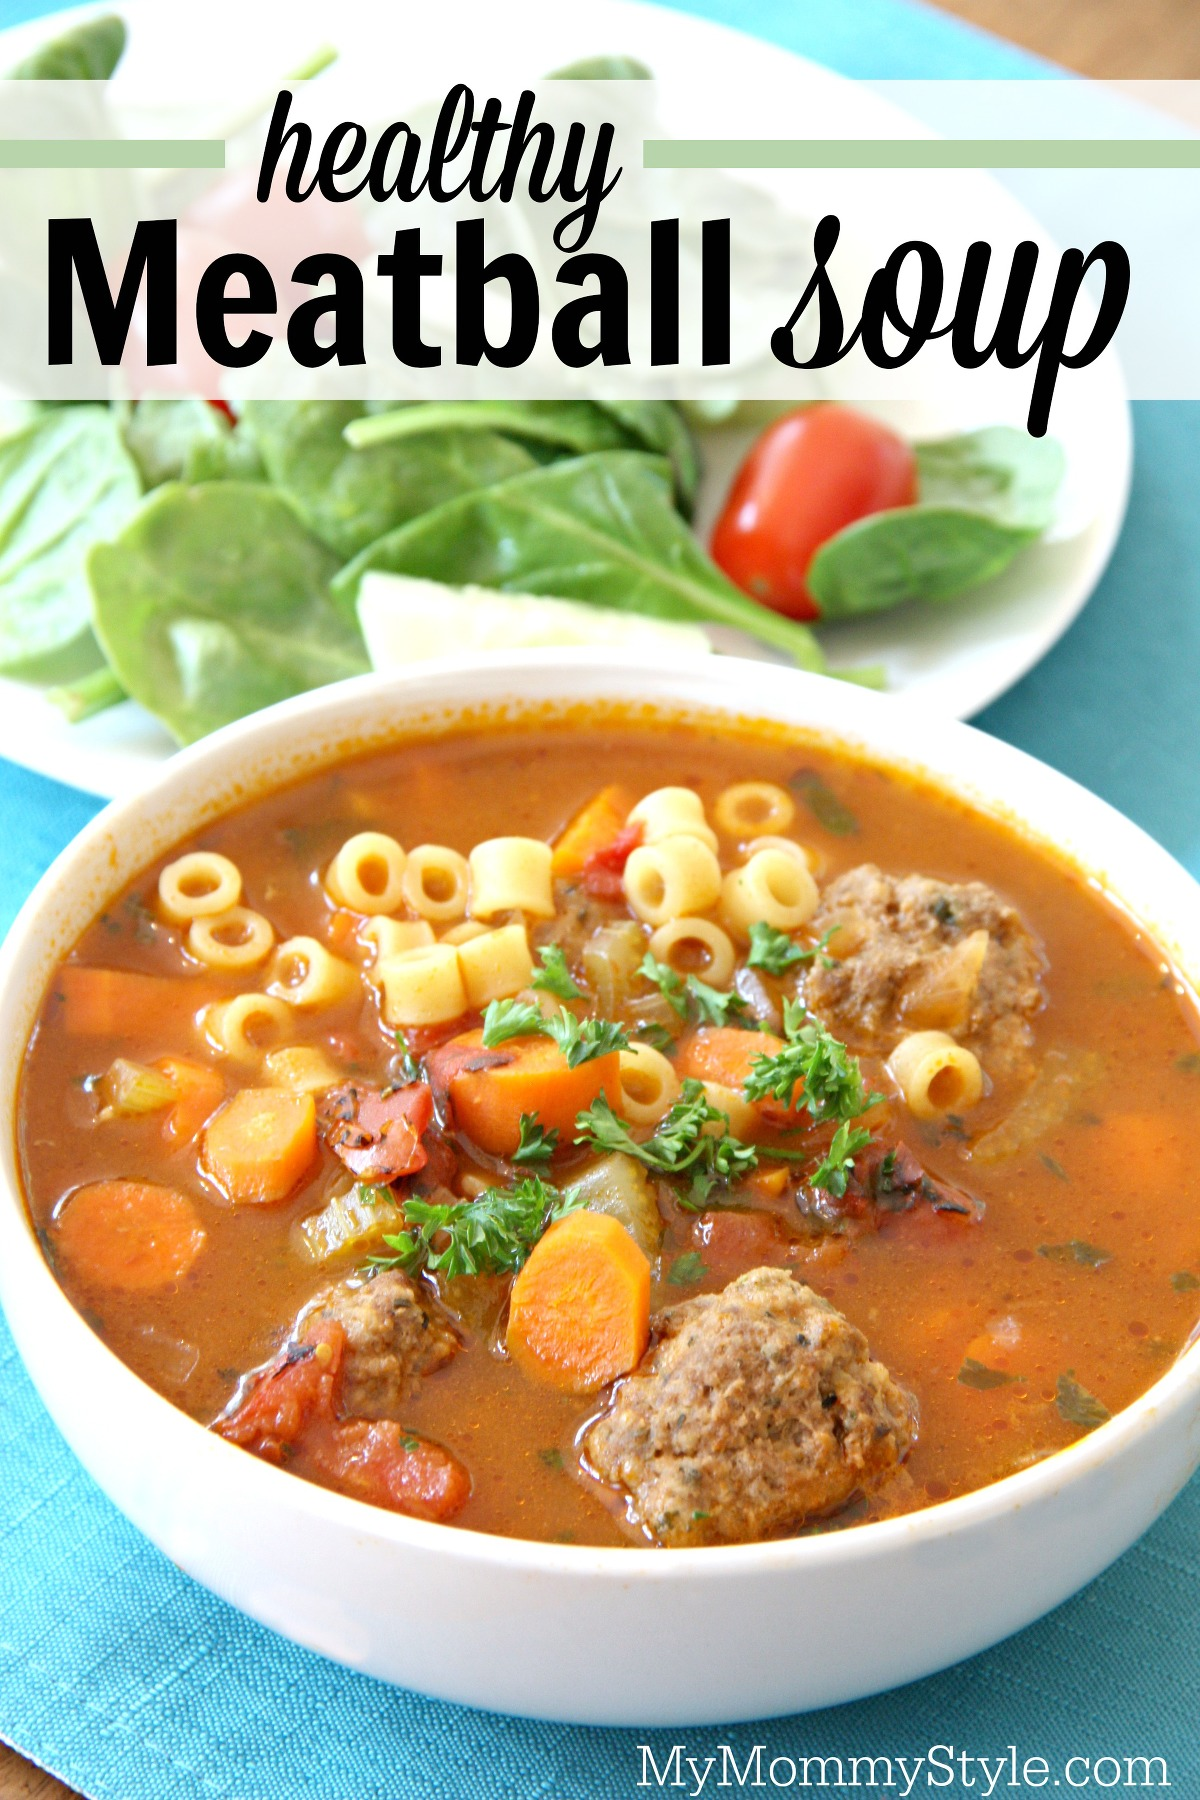 30-Minute Healthy Meatball Soup - My Mommy Style